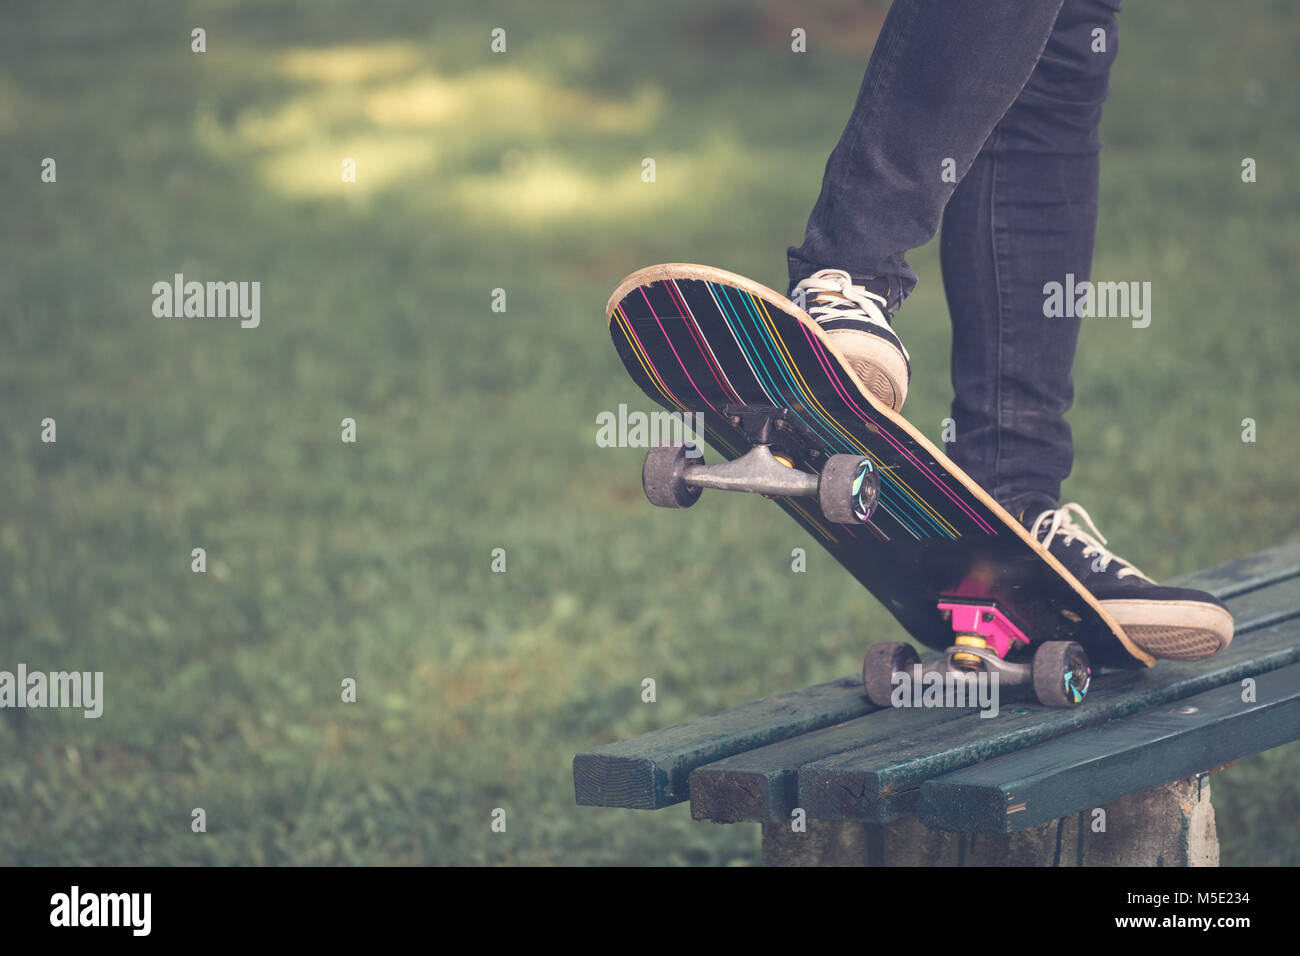 Close up of man legs ride on skate board - Stock Image